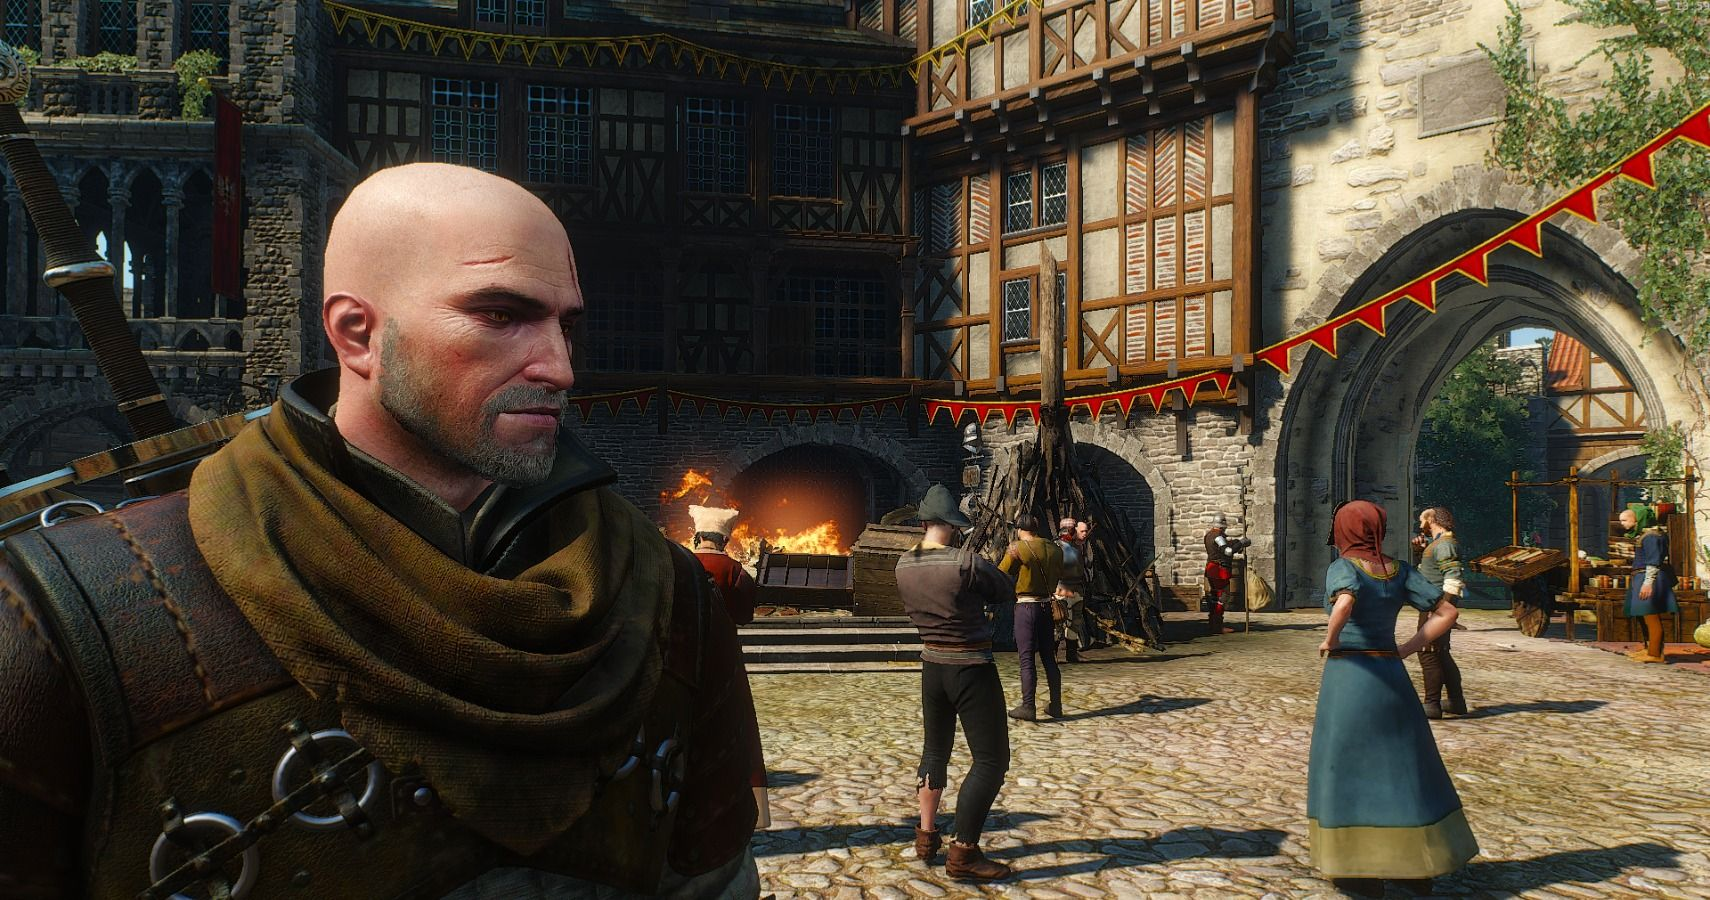 99% Of Video Game Characters Should, In Fact, Be Bald | TheGamer